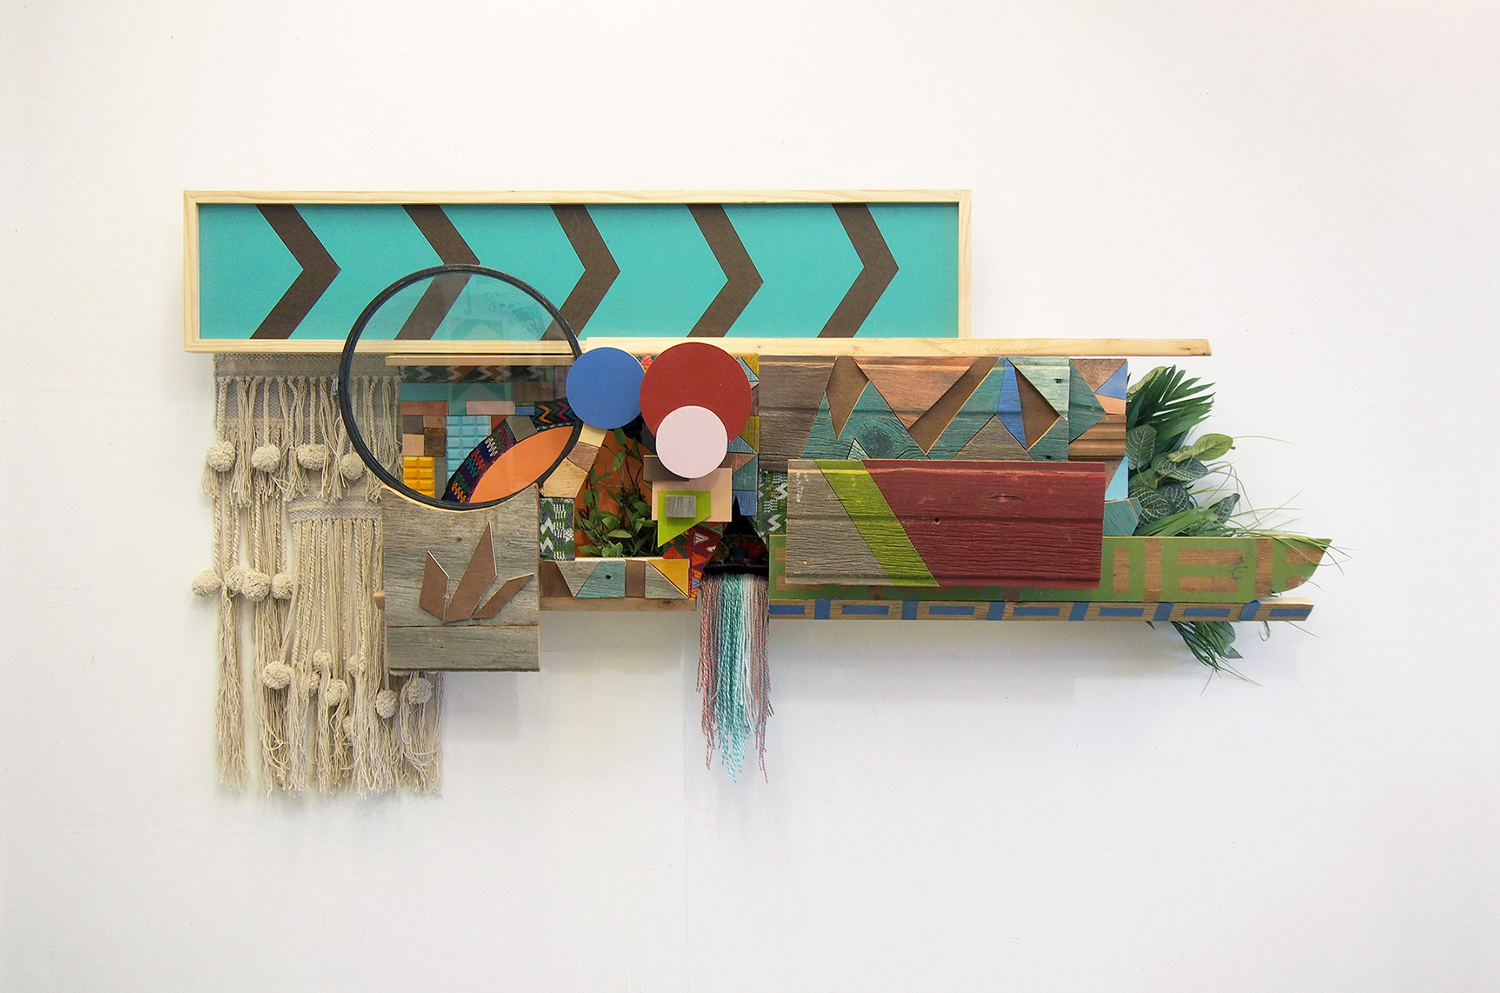 39x72x12 , wood, glass, cardboard, plastic, acrylic paint, oil stain, tape, patterned textiles (Guatemala), woven wall hanging, artificial plants, 39 x 72 x 12 inches